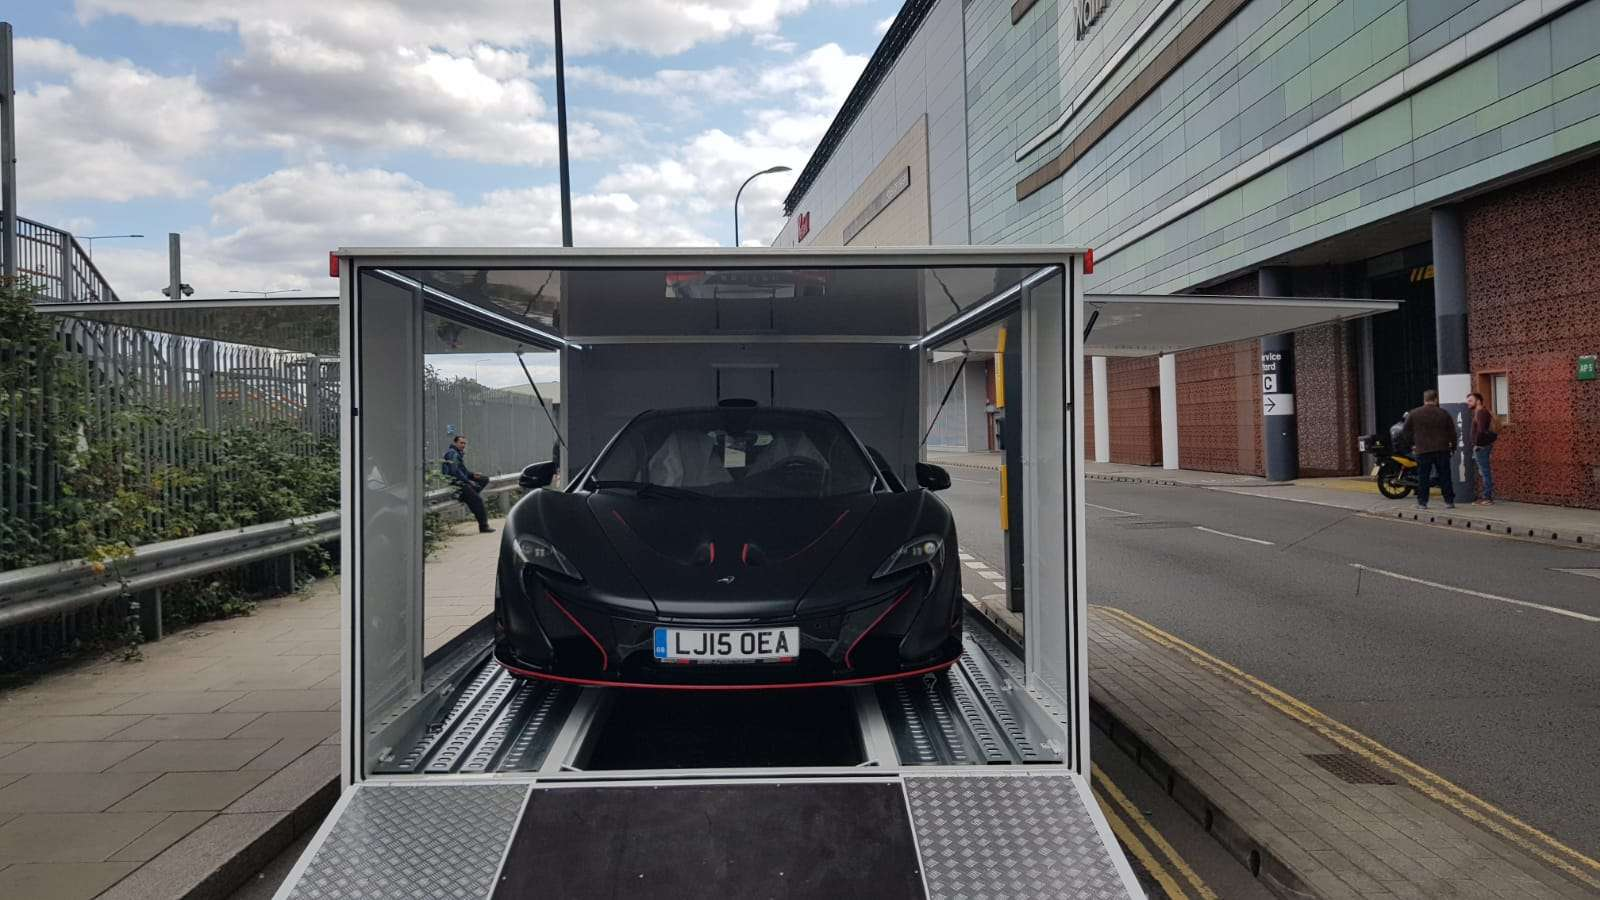 Bsm Car Transport Covered Enclosed London Uk Europe Luxury 17 3